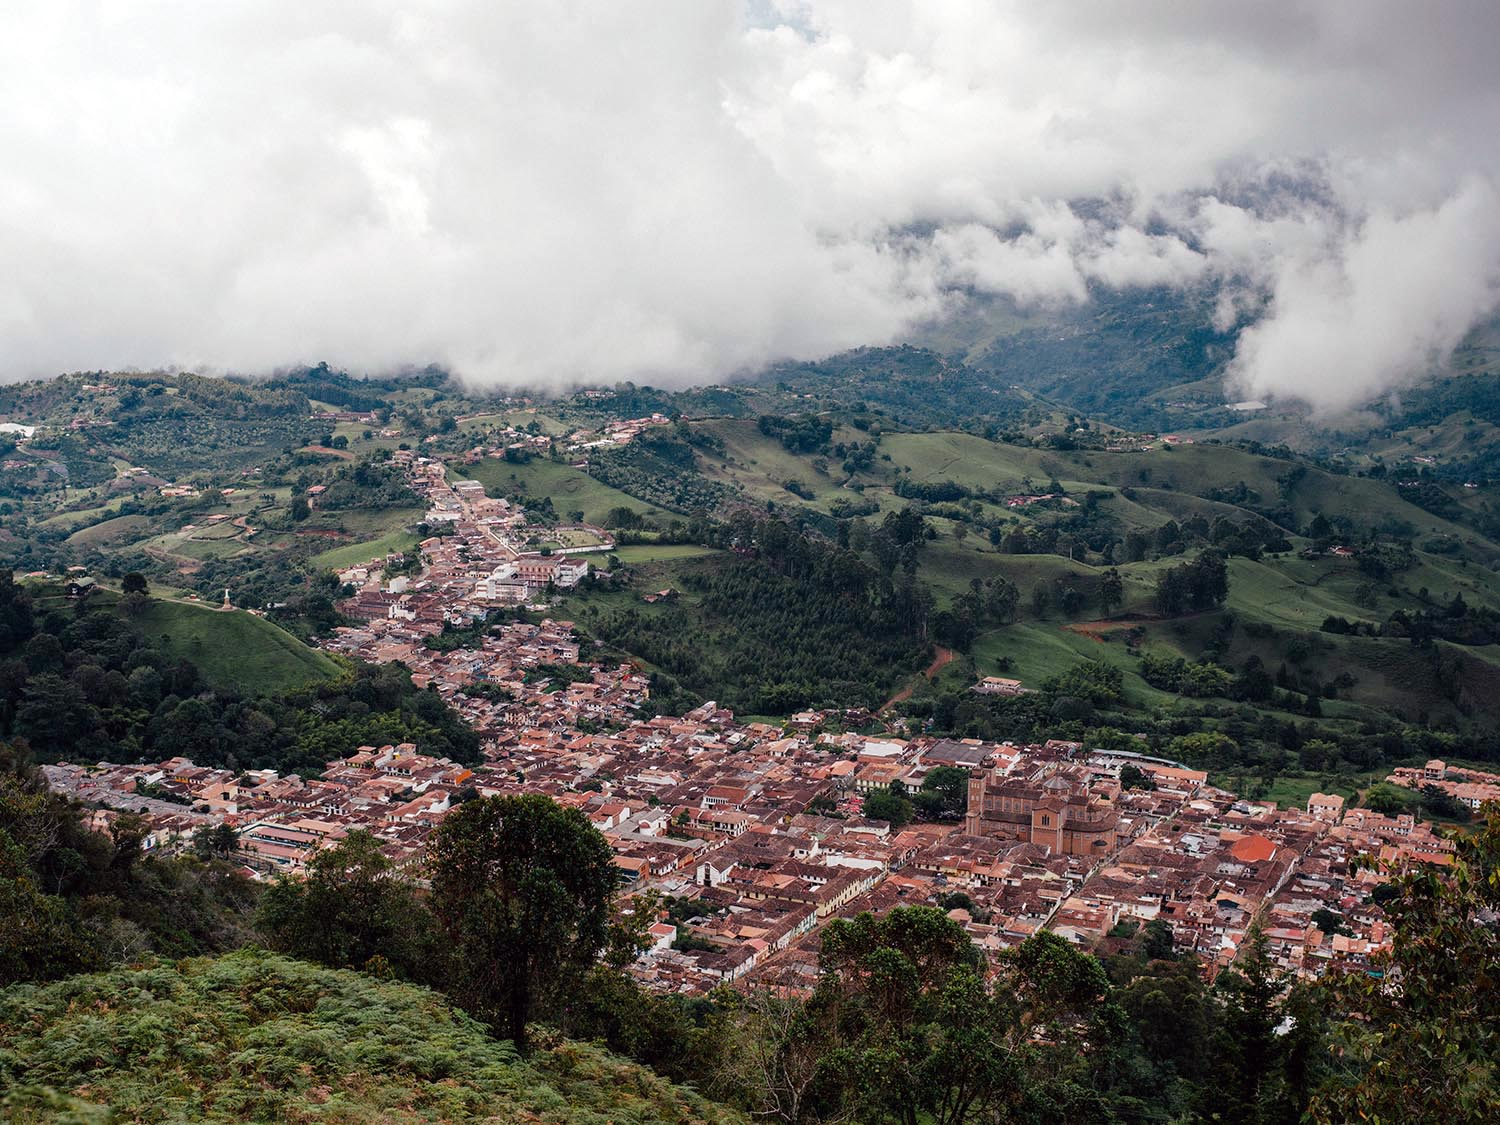 View from Cerro Las Nubes in Jericó.